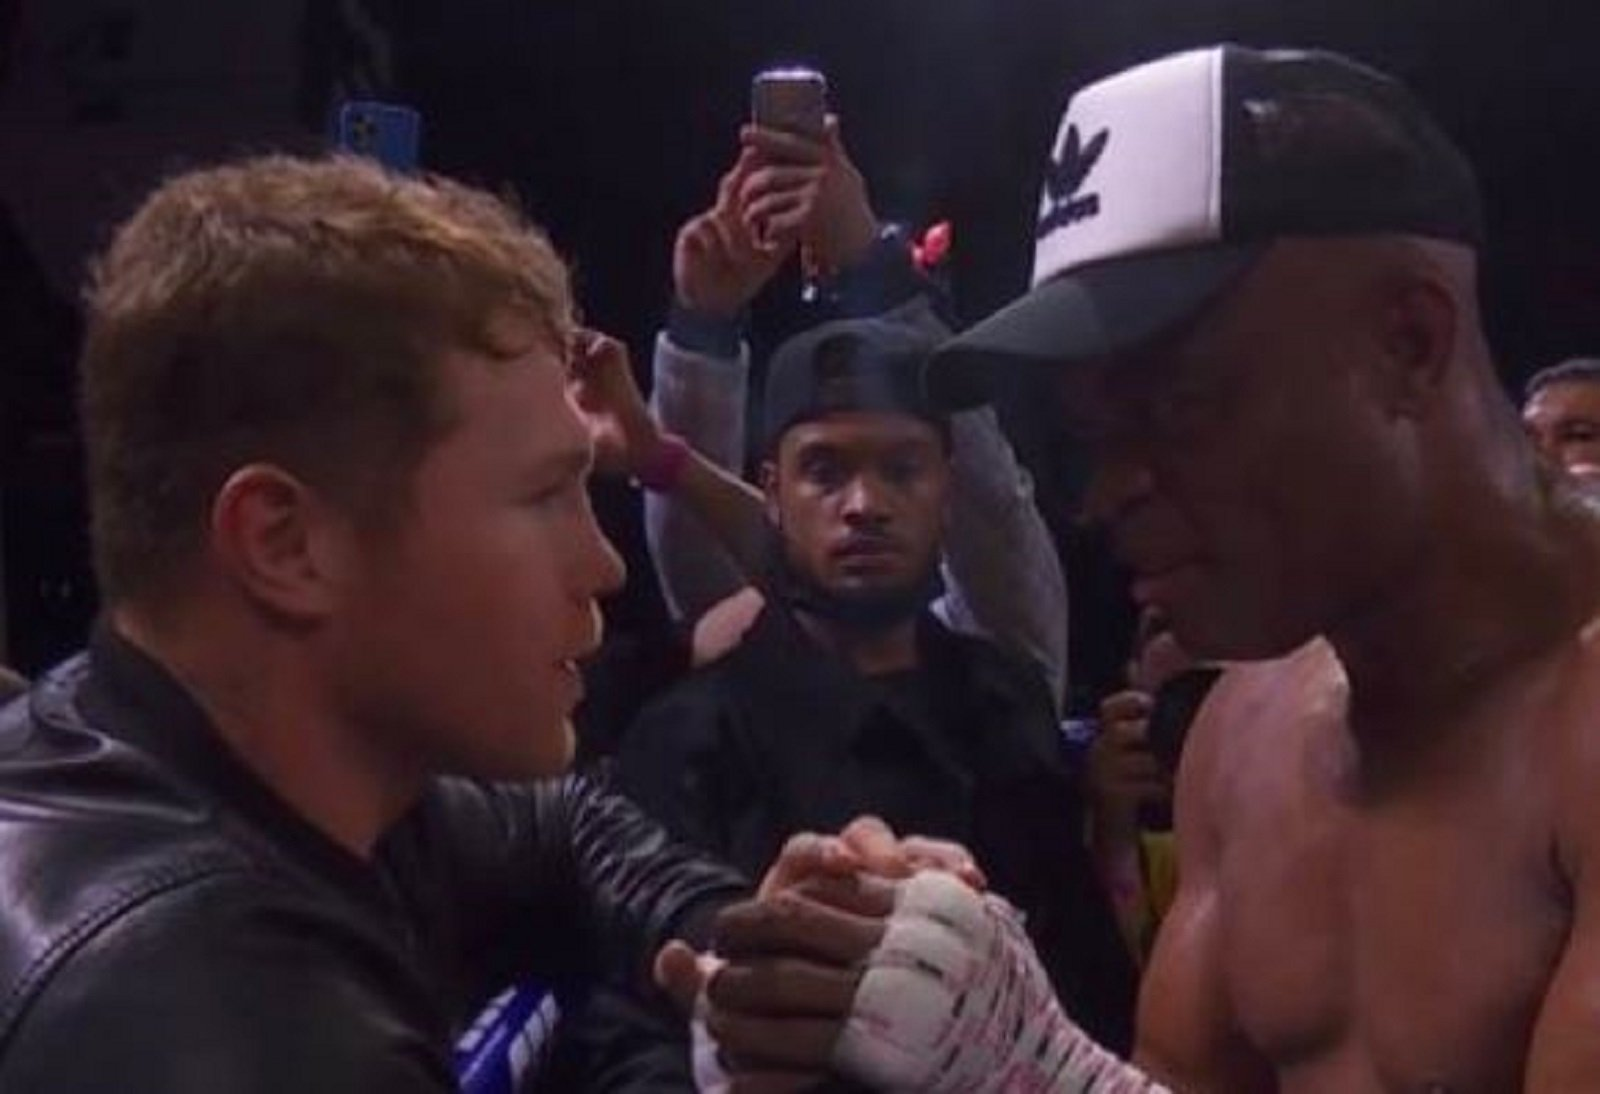 canelo reacts to fight legend beating son of boxing legend